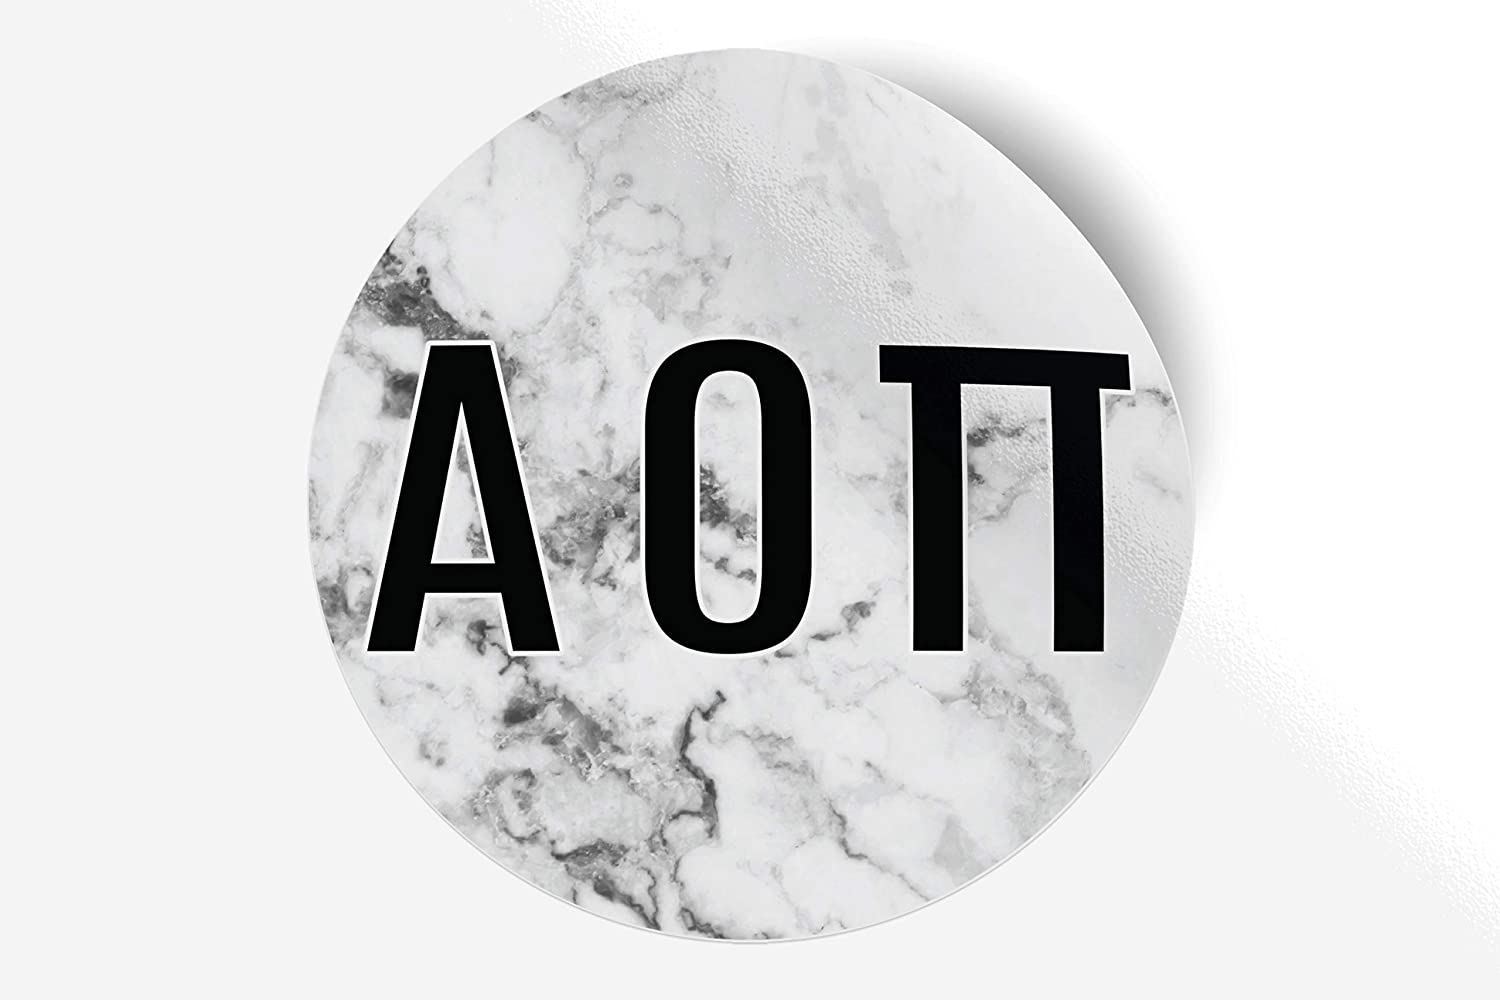 Alpha Omicron Pi Sticker Greek Sorority Decal for Car, Laptop, Windows, Officially Licensed Product, Monogram Design 5